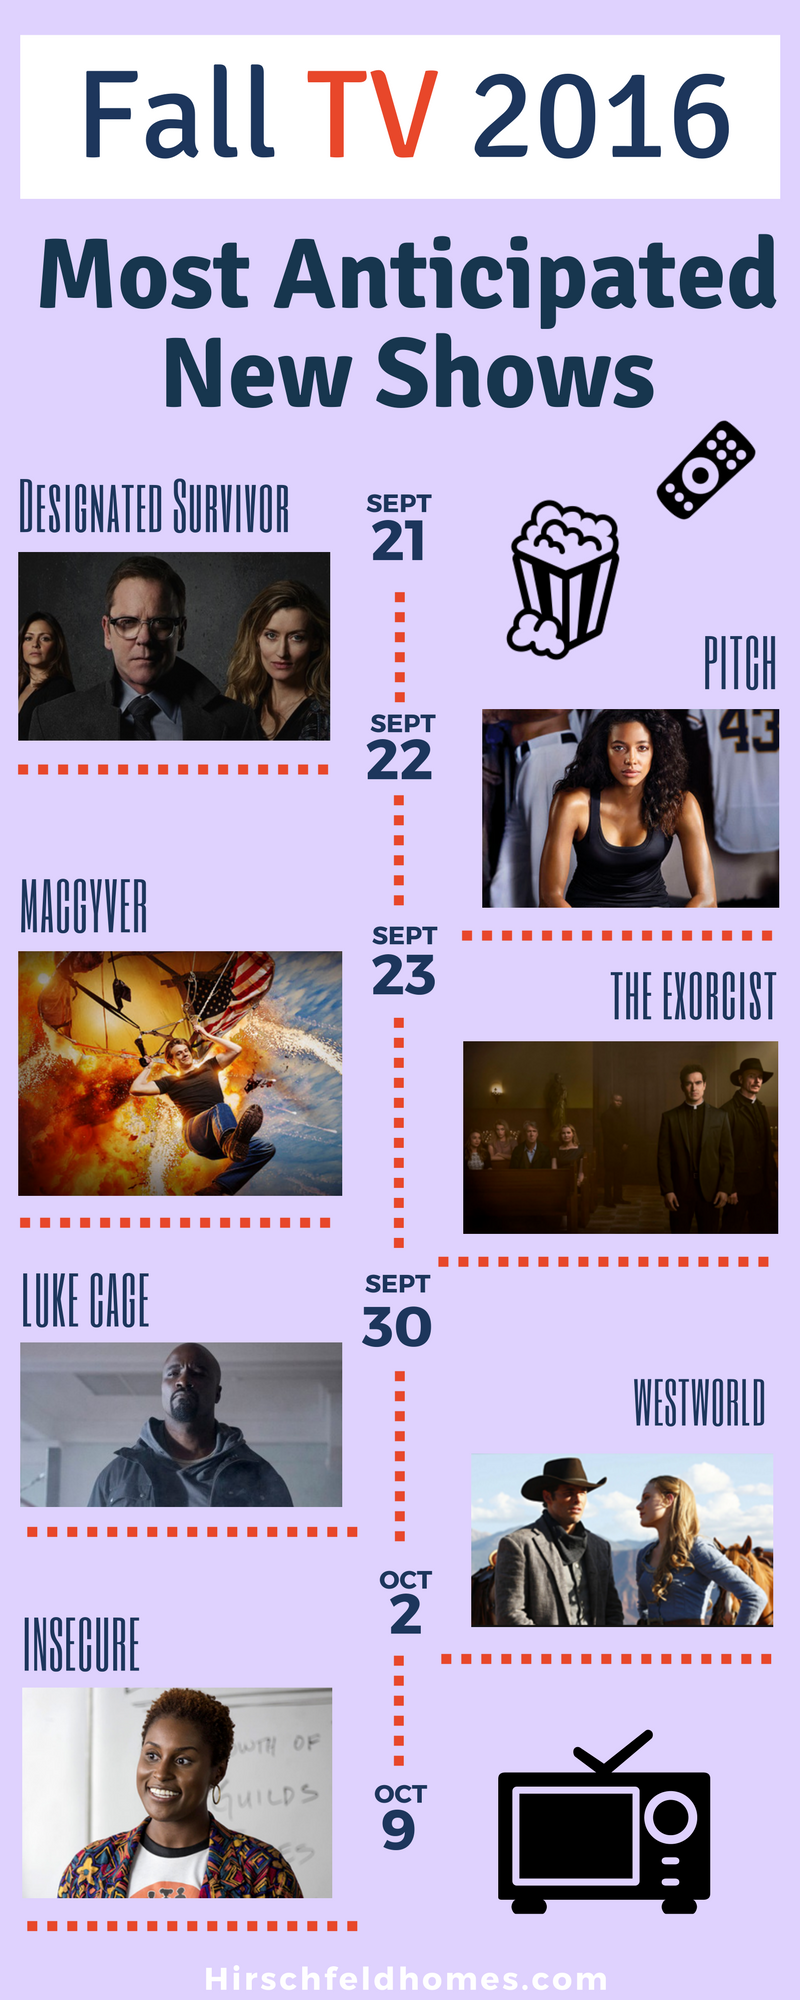 fall tv 20016 must watch premieres watch designated survivor september 21, pitch september 22, macgyver and the exorcist september 23, luke case september 30, westworld october 2, insecure october 9